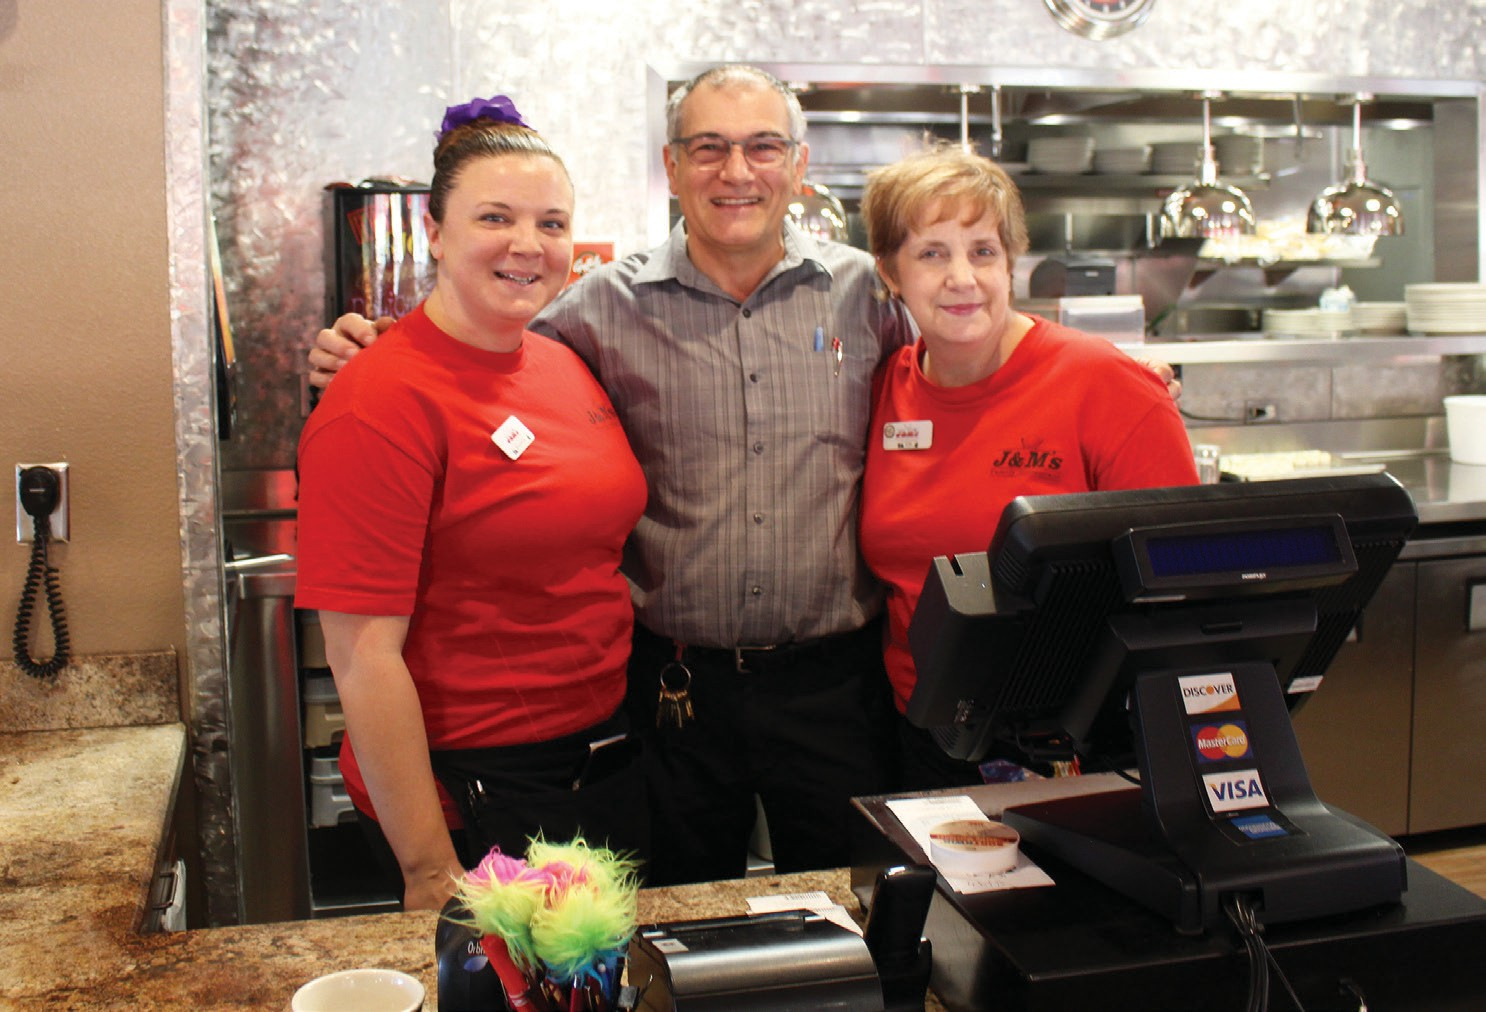 "Joe Goncalves, owner of J&M's Restaurant, has always prided himself on selling ""quality food at an affordable price. He is shown with longtime employees Shannon Jones and Kimberly Forrest."